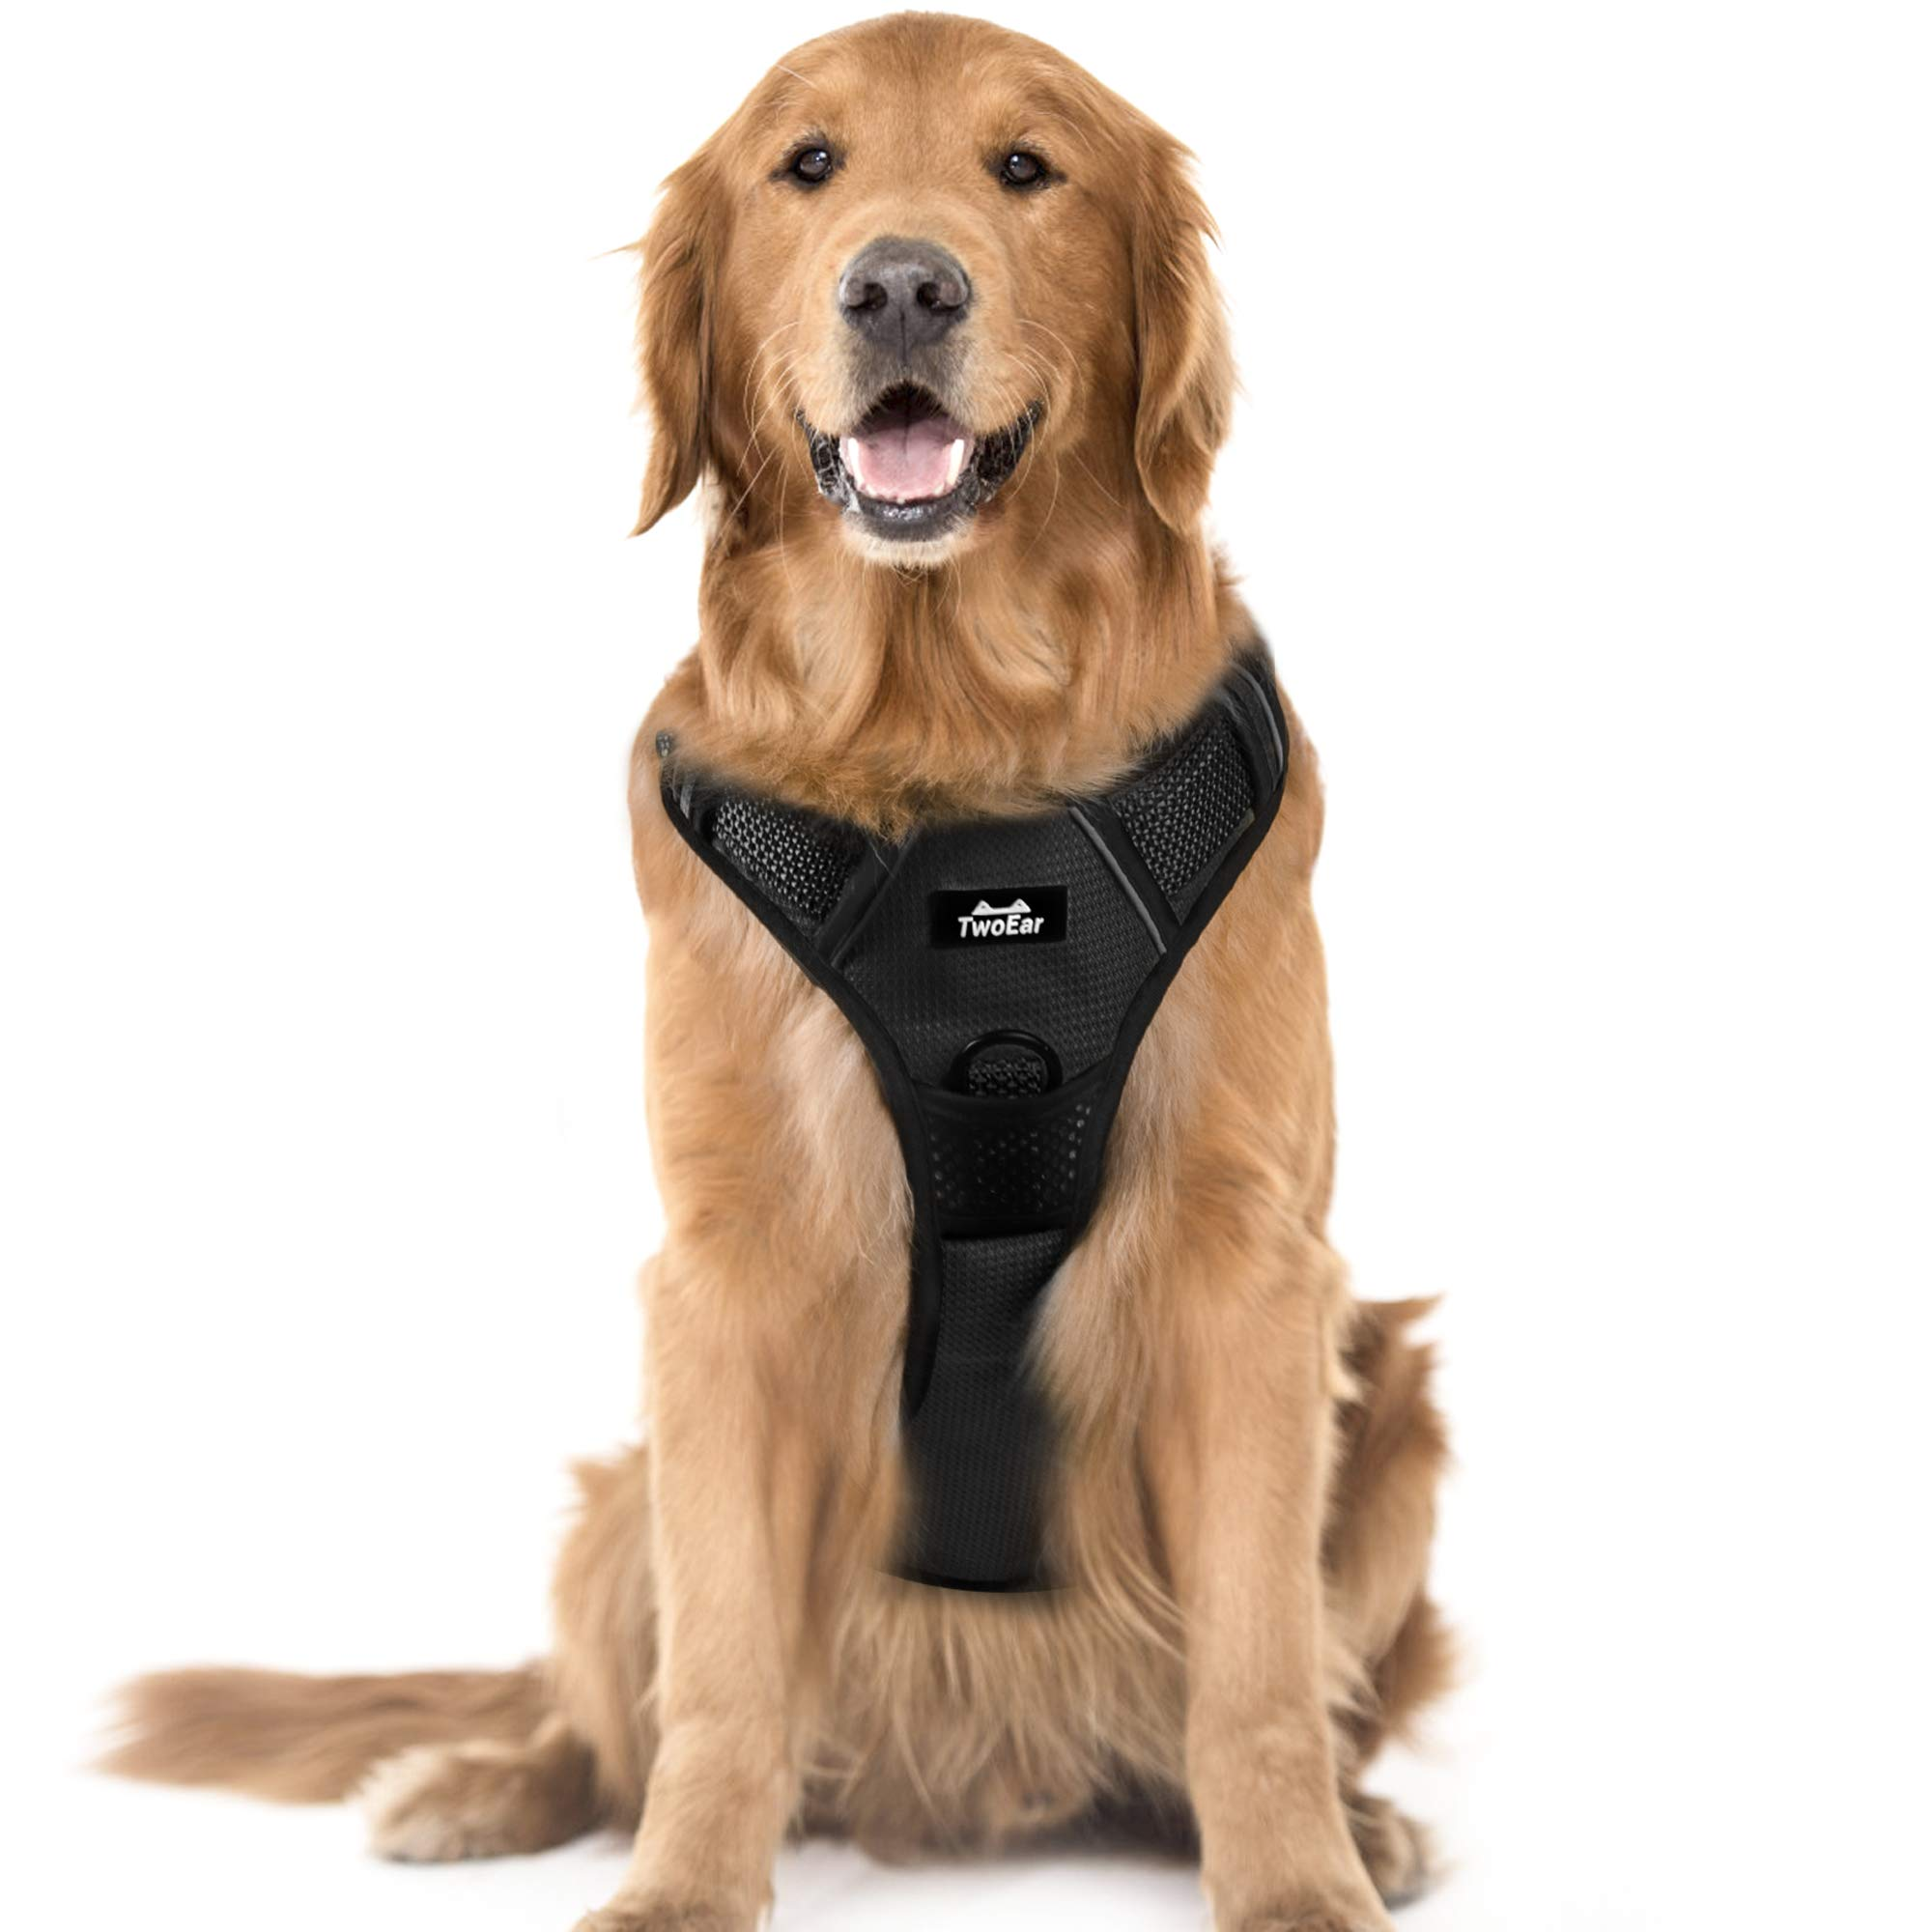 TwoEar Dog Harness, No Pull Reflective Harness Front Clip Easy Control Handle Adjustable Soft Padded Pet Vest for Puppy Small Medium Large Dogs Breed Pet(Extra Large,Black)